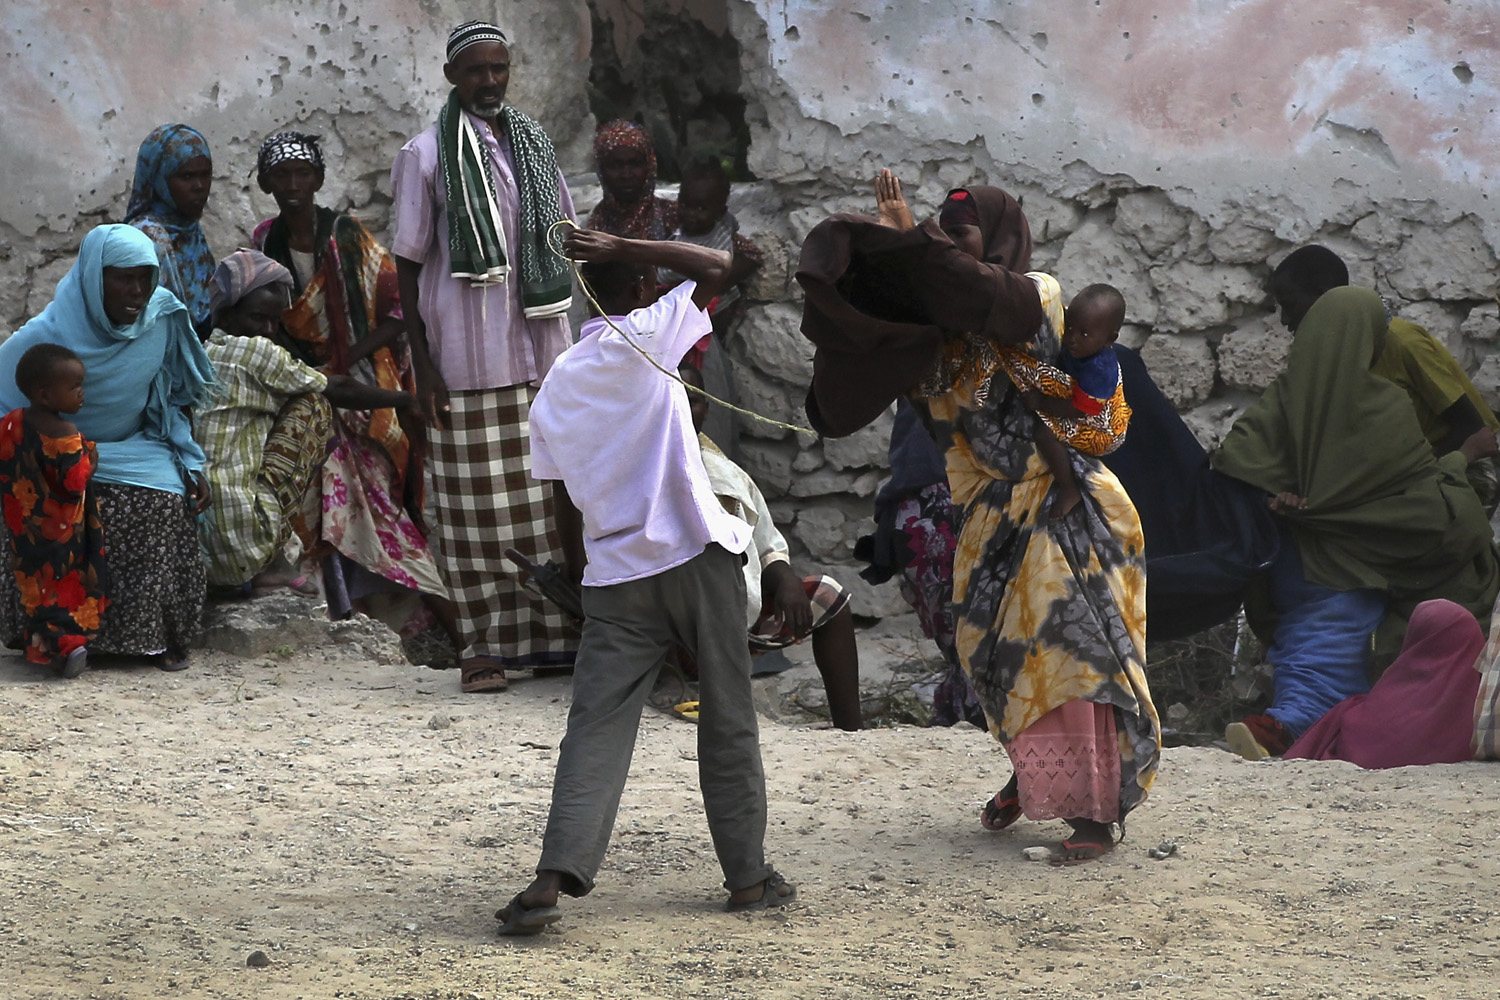 August 18, 2011. A security guard beats a woman for trying to enter a feeding center at a camp for Somalis displaced by drought and famine in Mogadishu, Somalia.